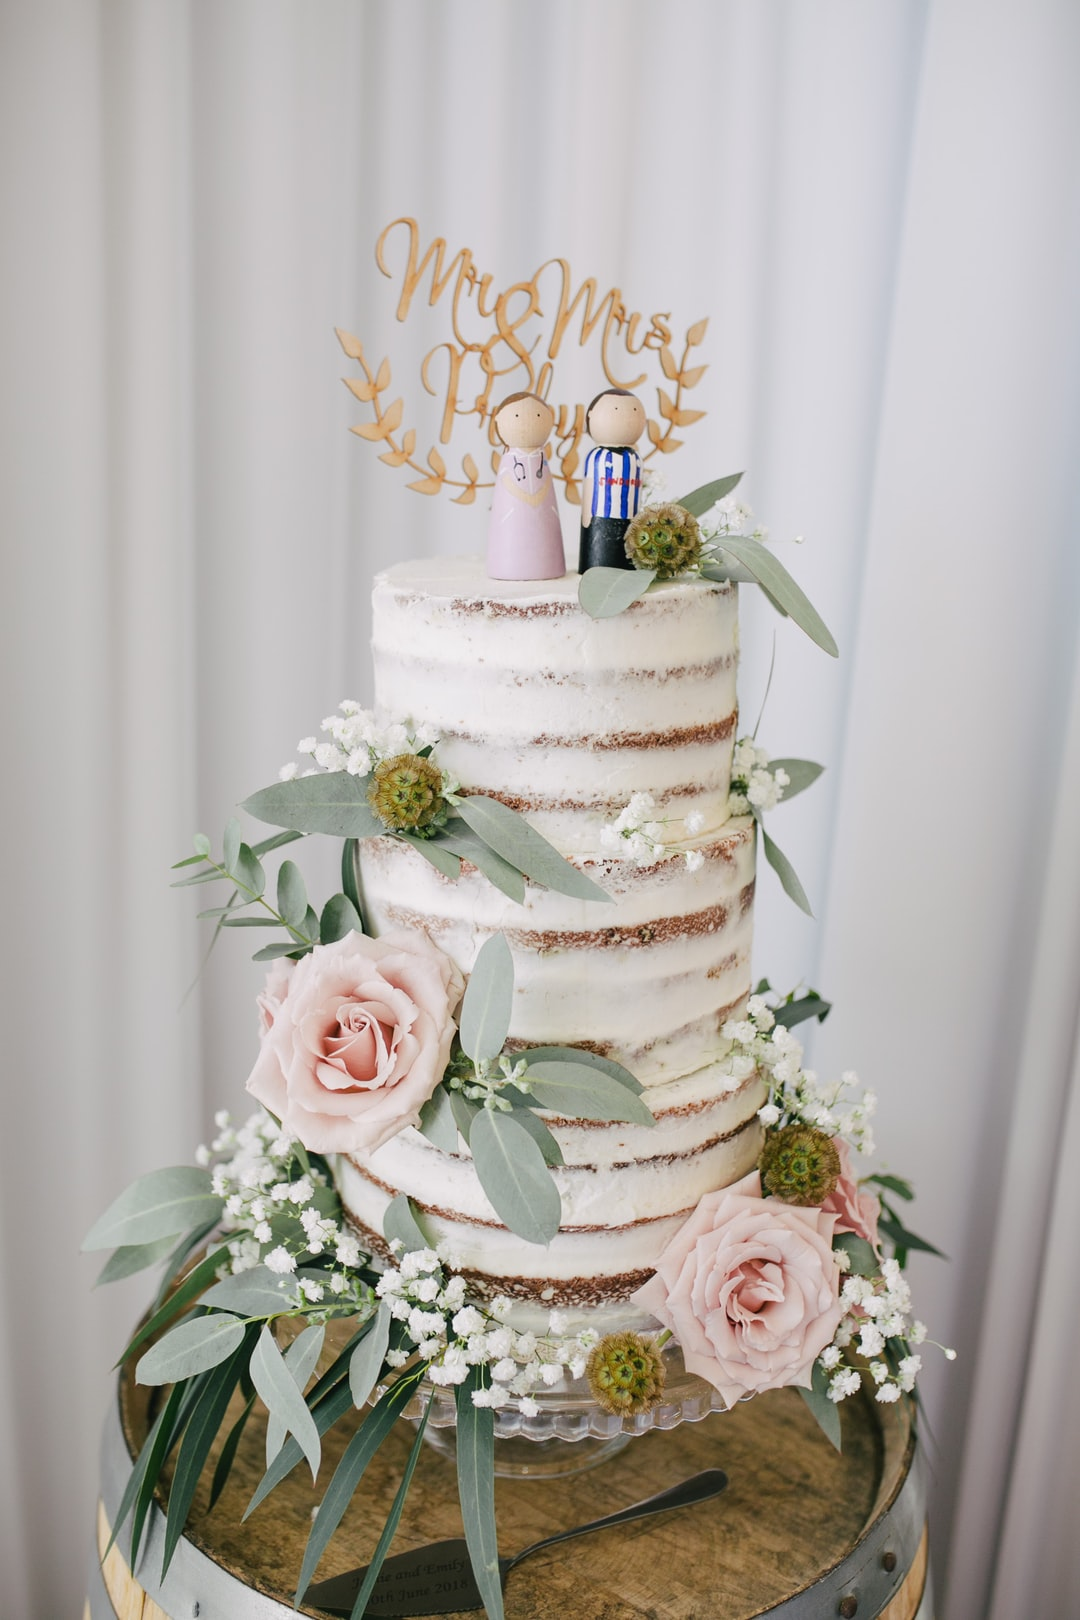 Wedding Cake With Flower Details Photo By Photos By Lanty